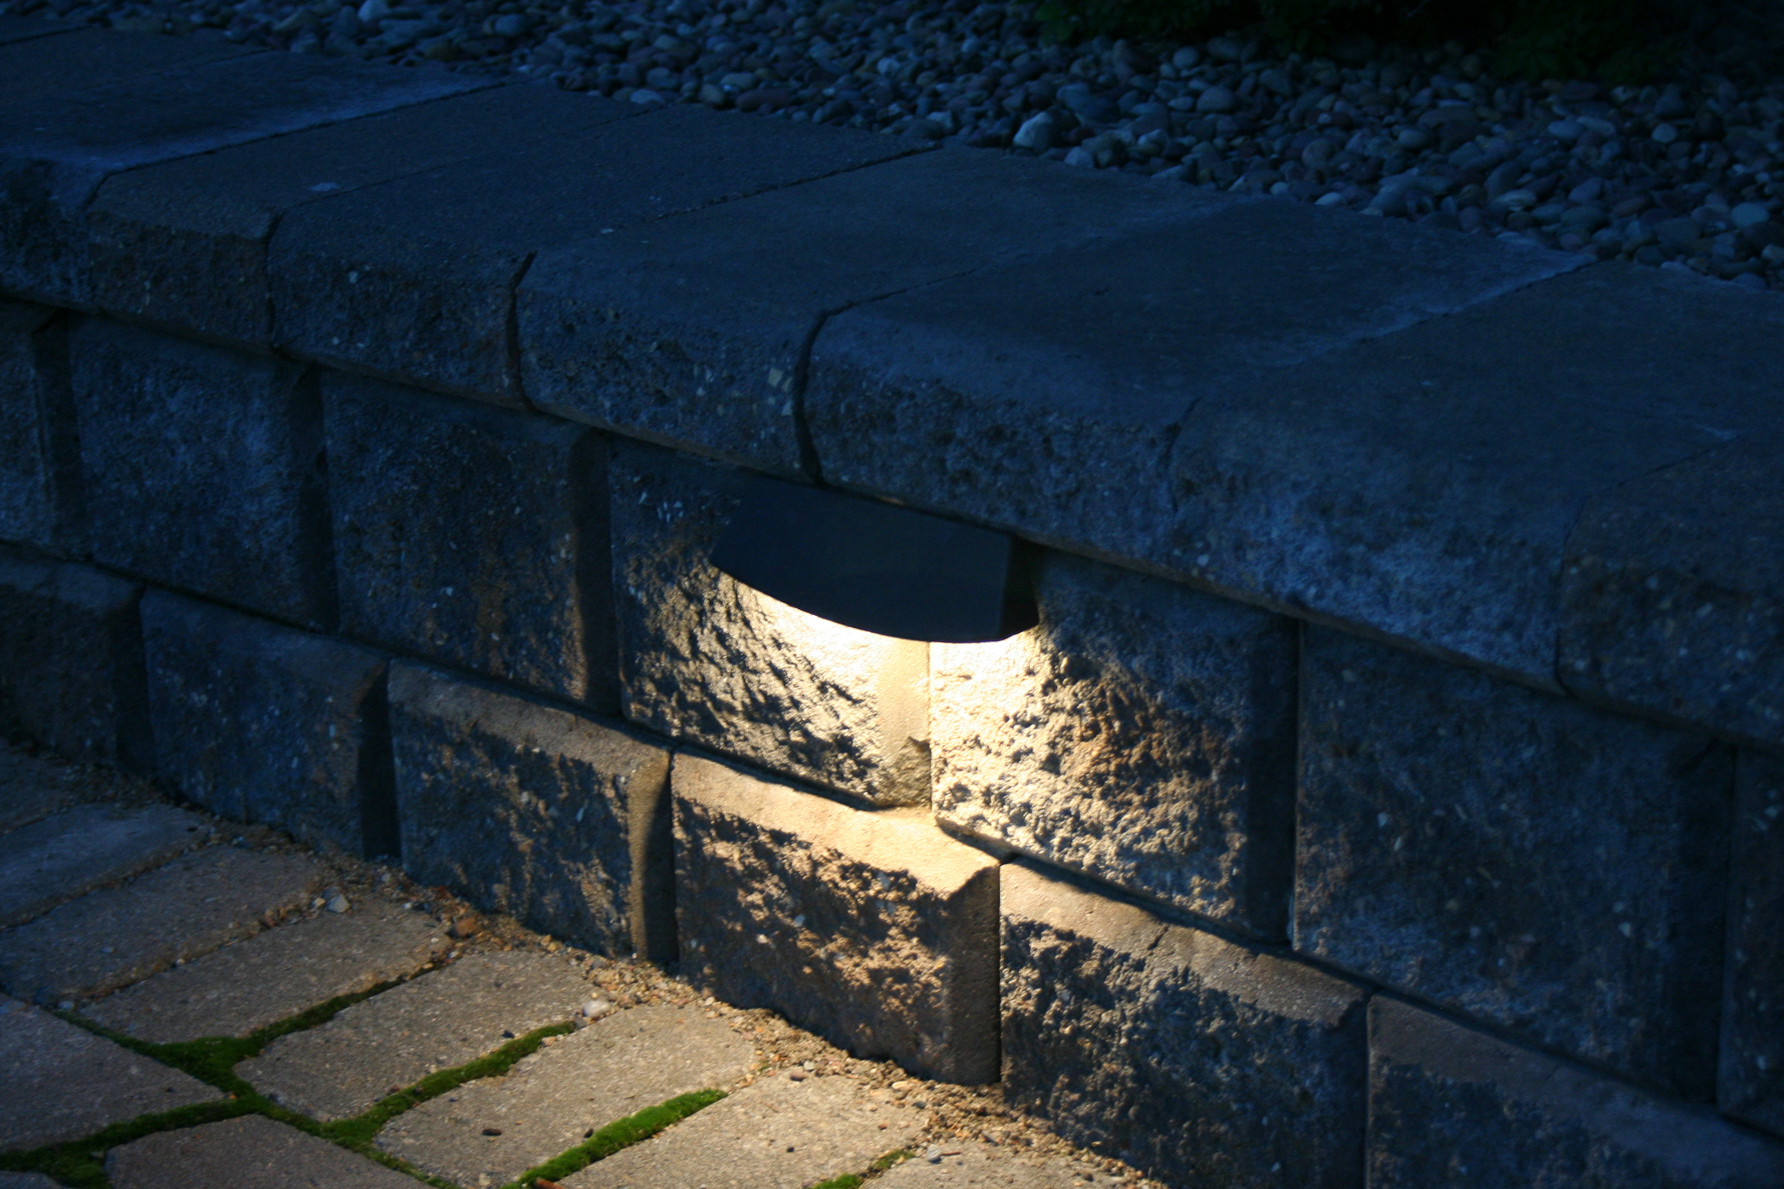 lighting-edge-wall-3.jpg